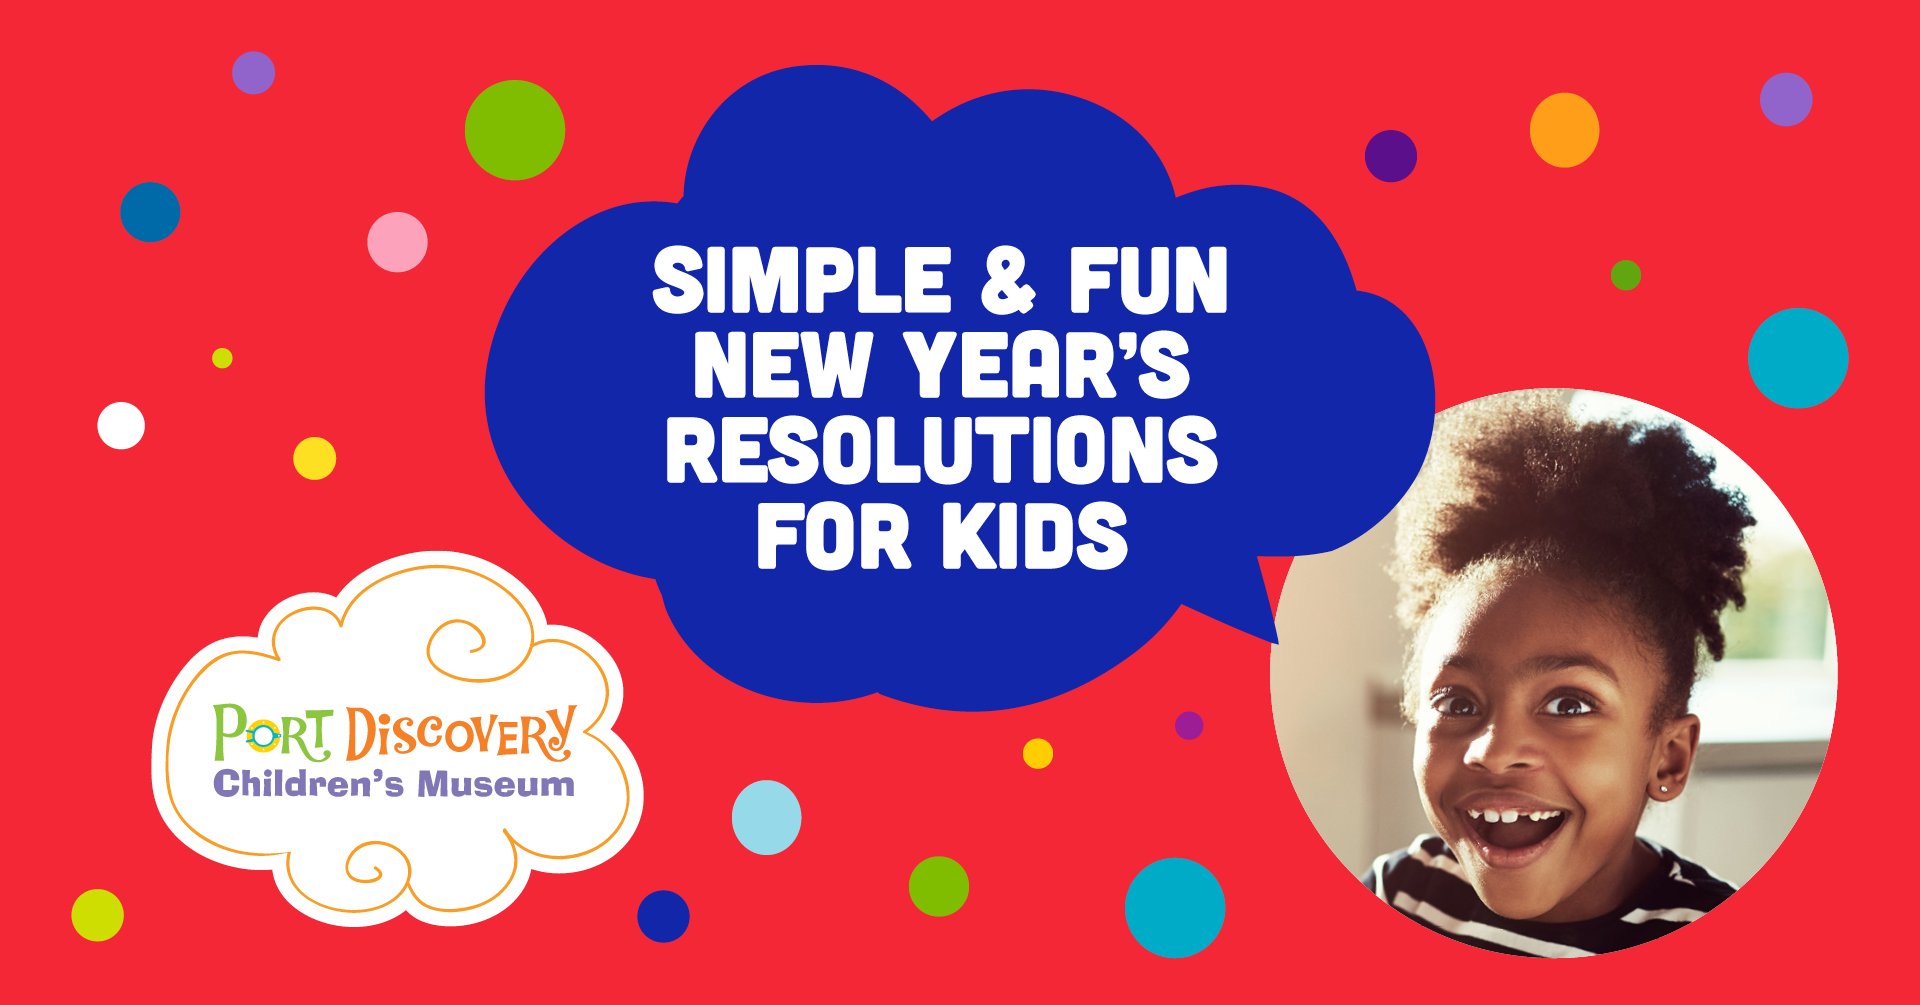 Simple & Fun New Year's Resolutions